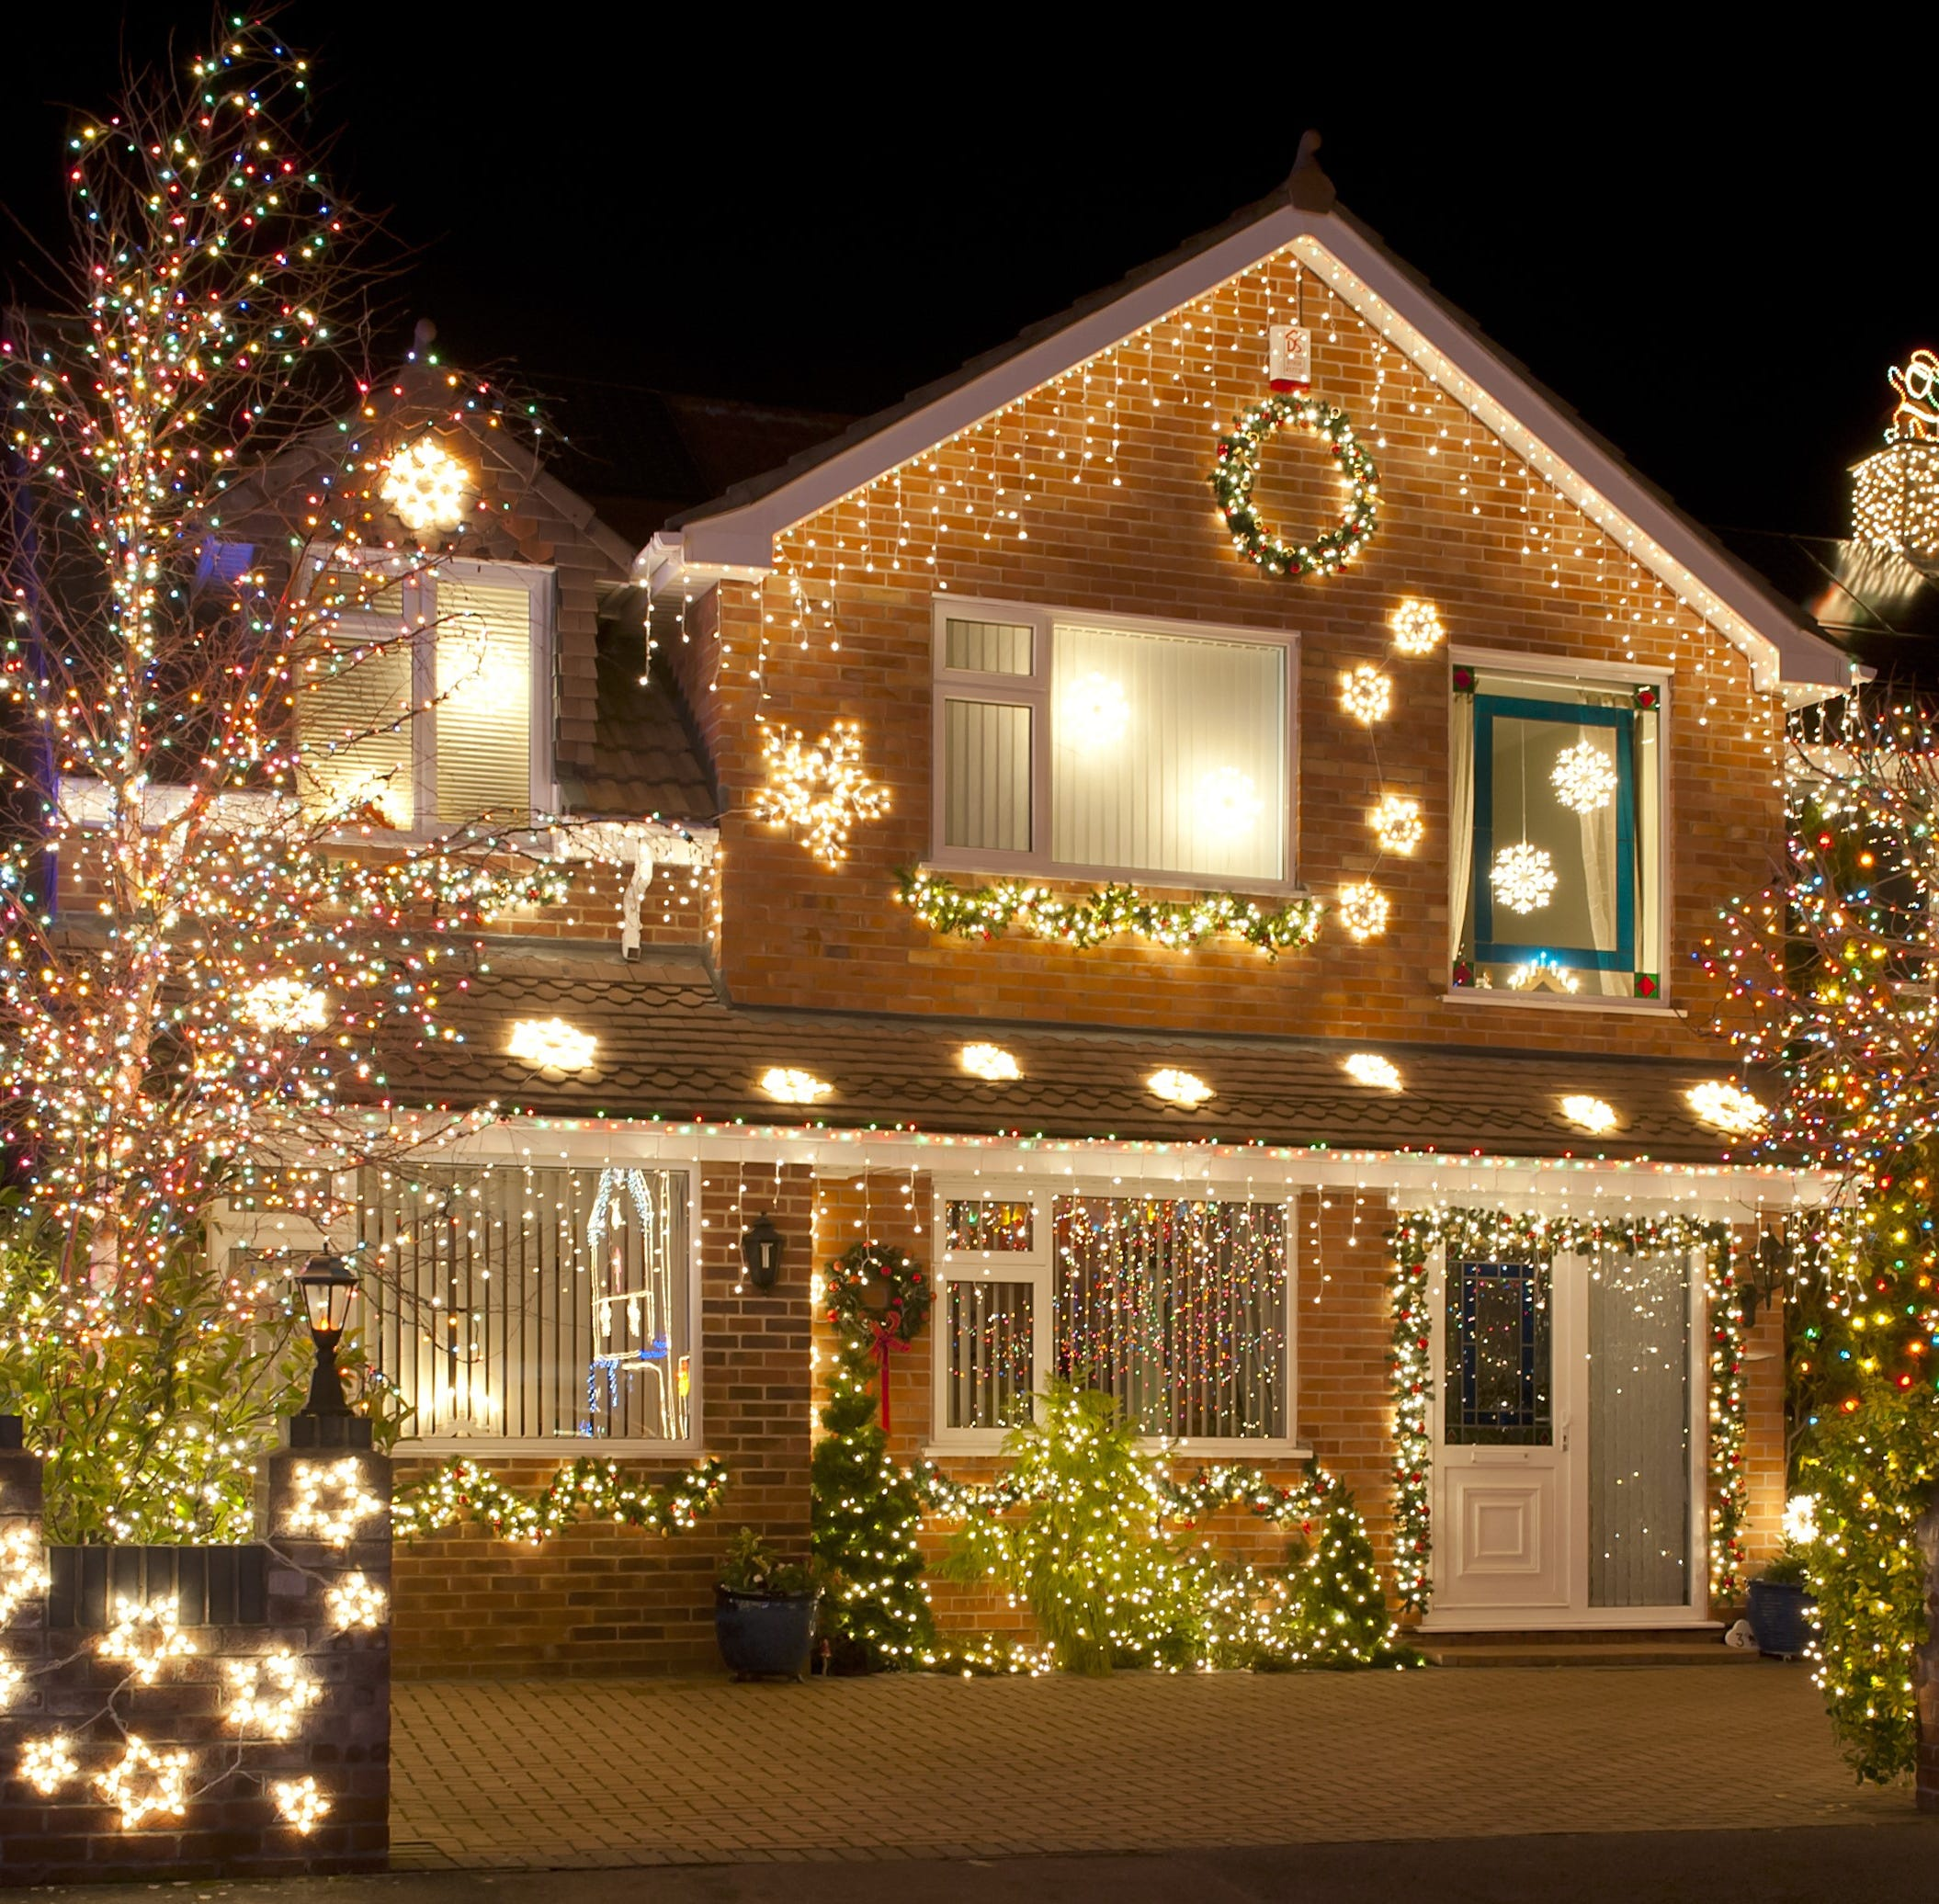 Vineland announces Holiday Lighting Contest